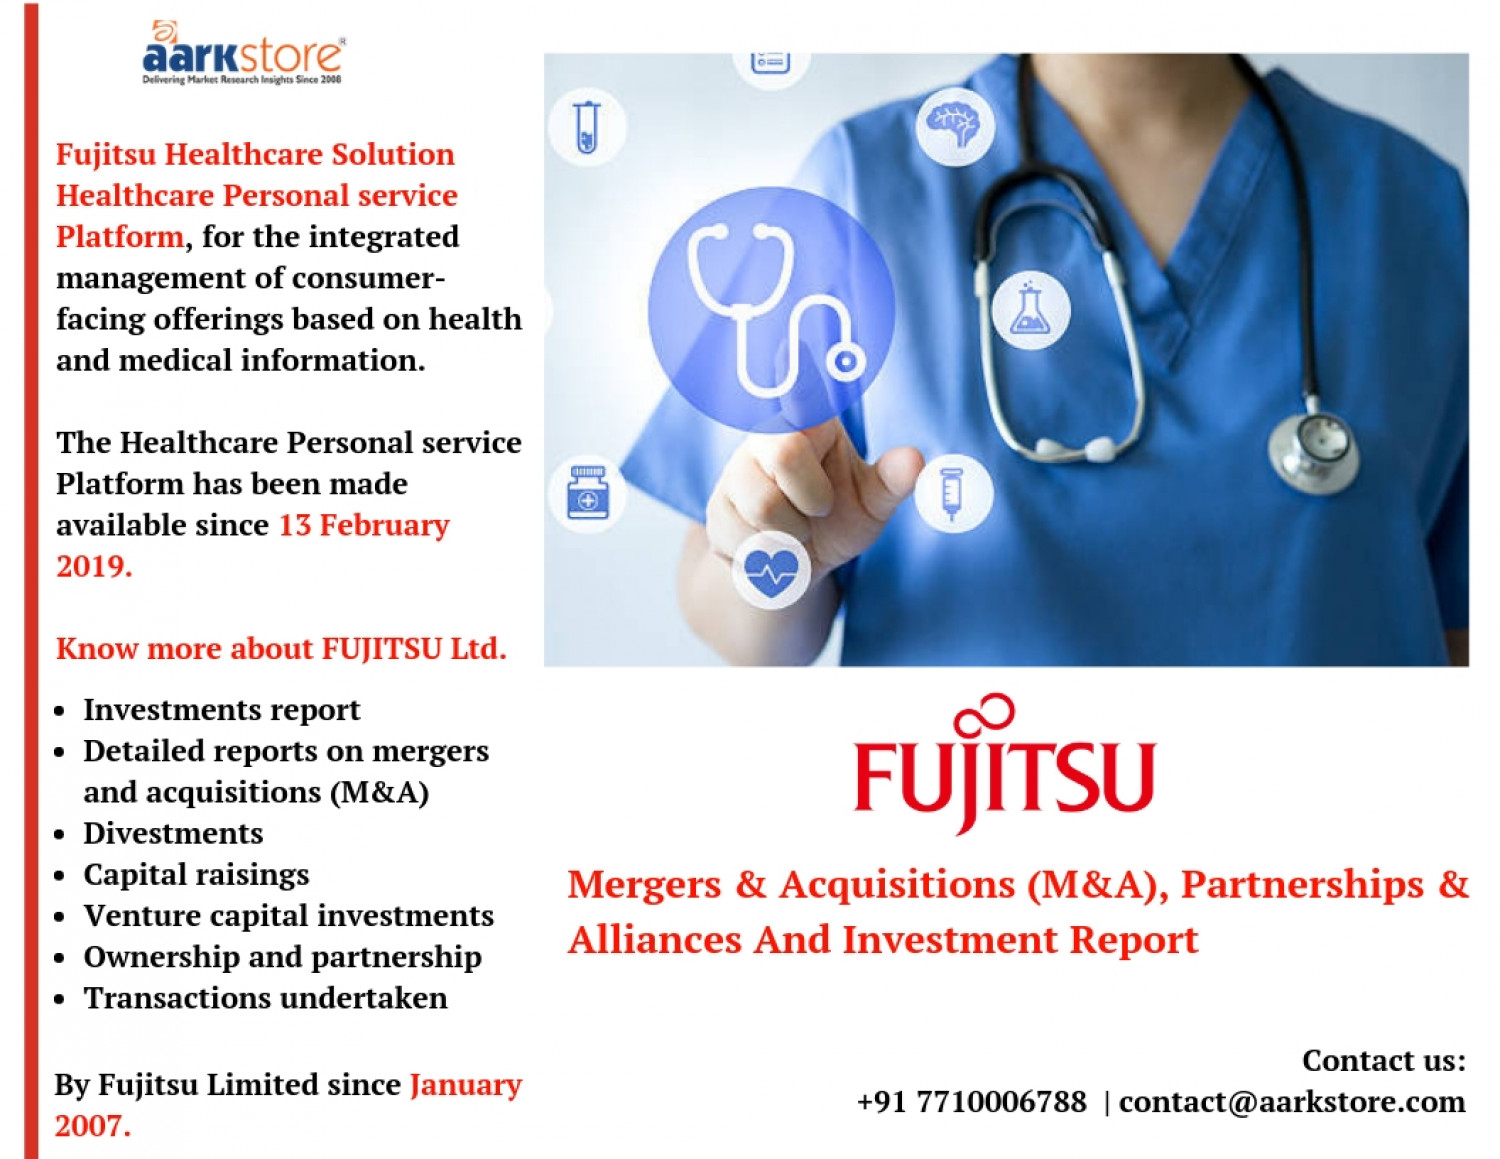 Fujitsu Limited, Mergers and Acquisitions, Partnerships and Alliances - Company Profiles Infographic